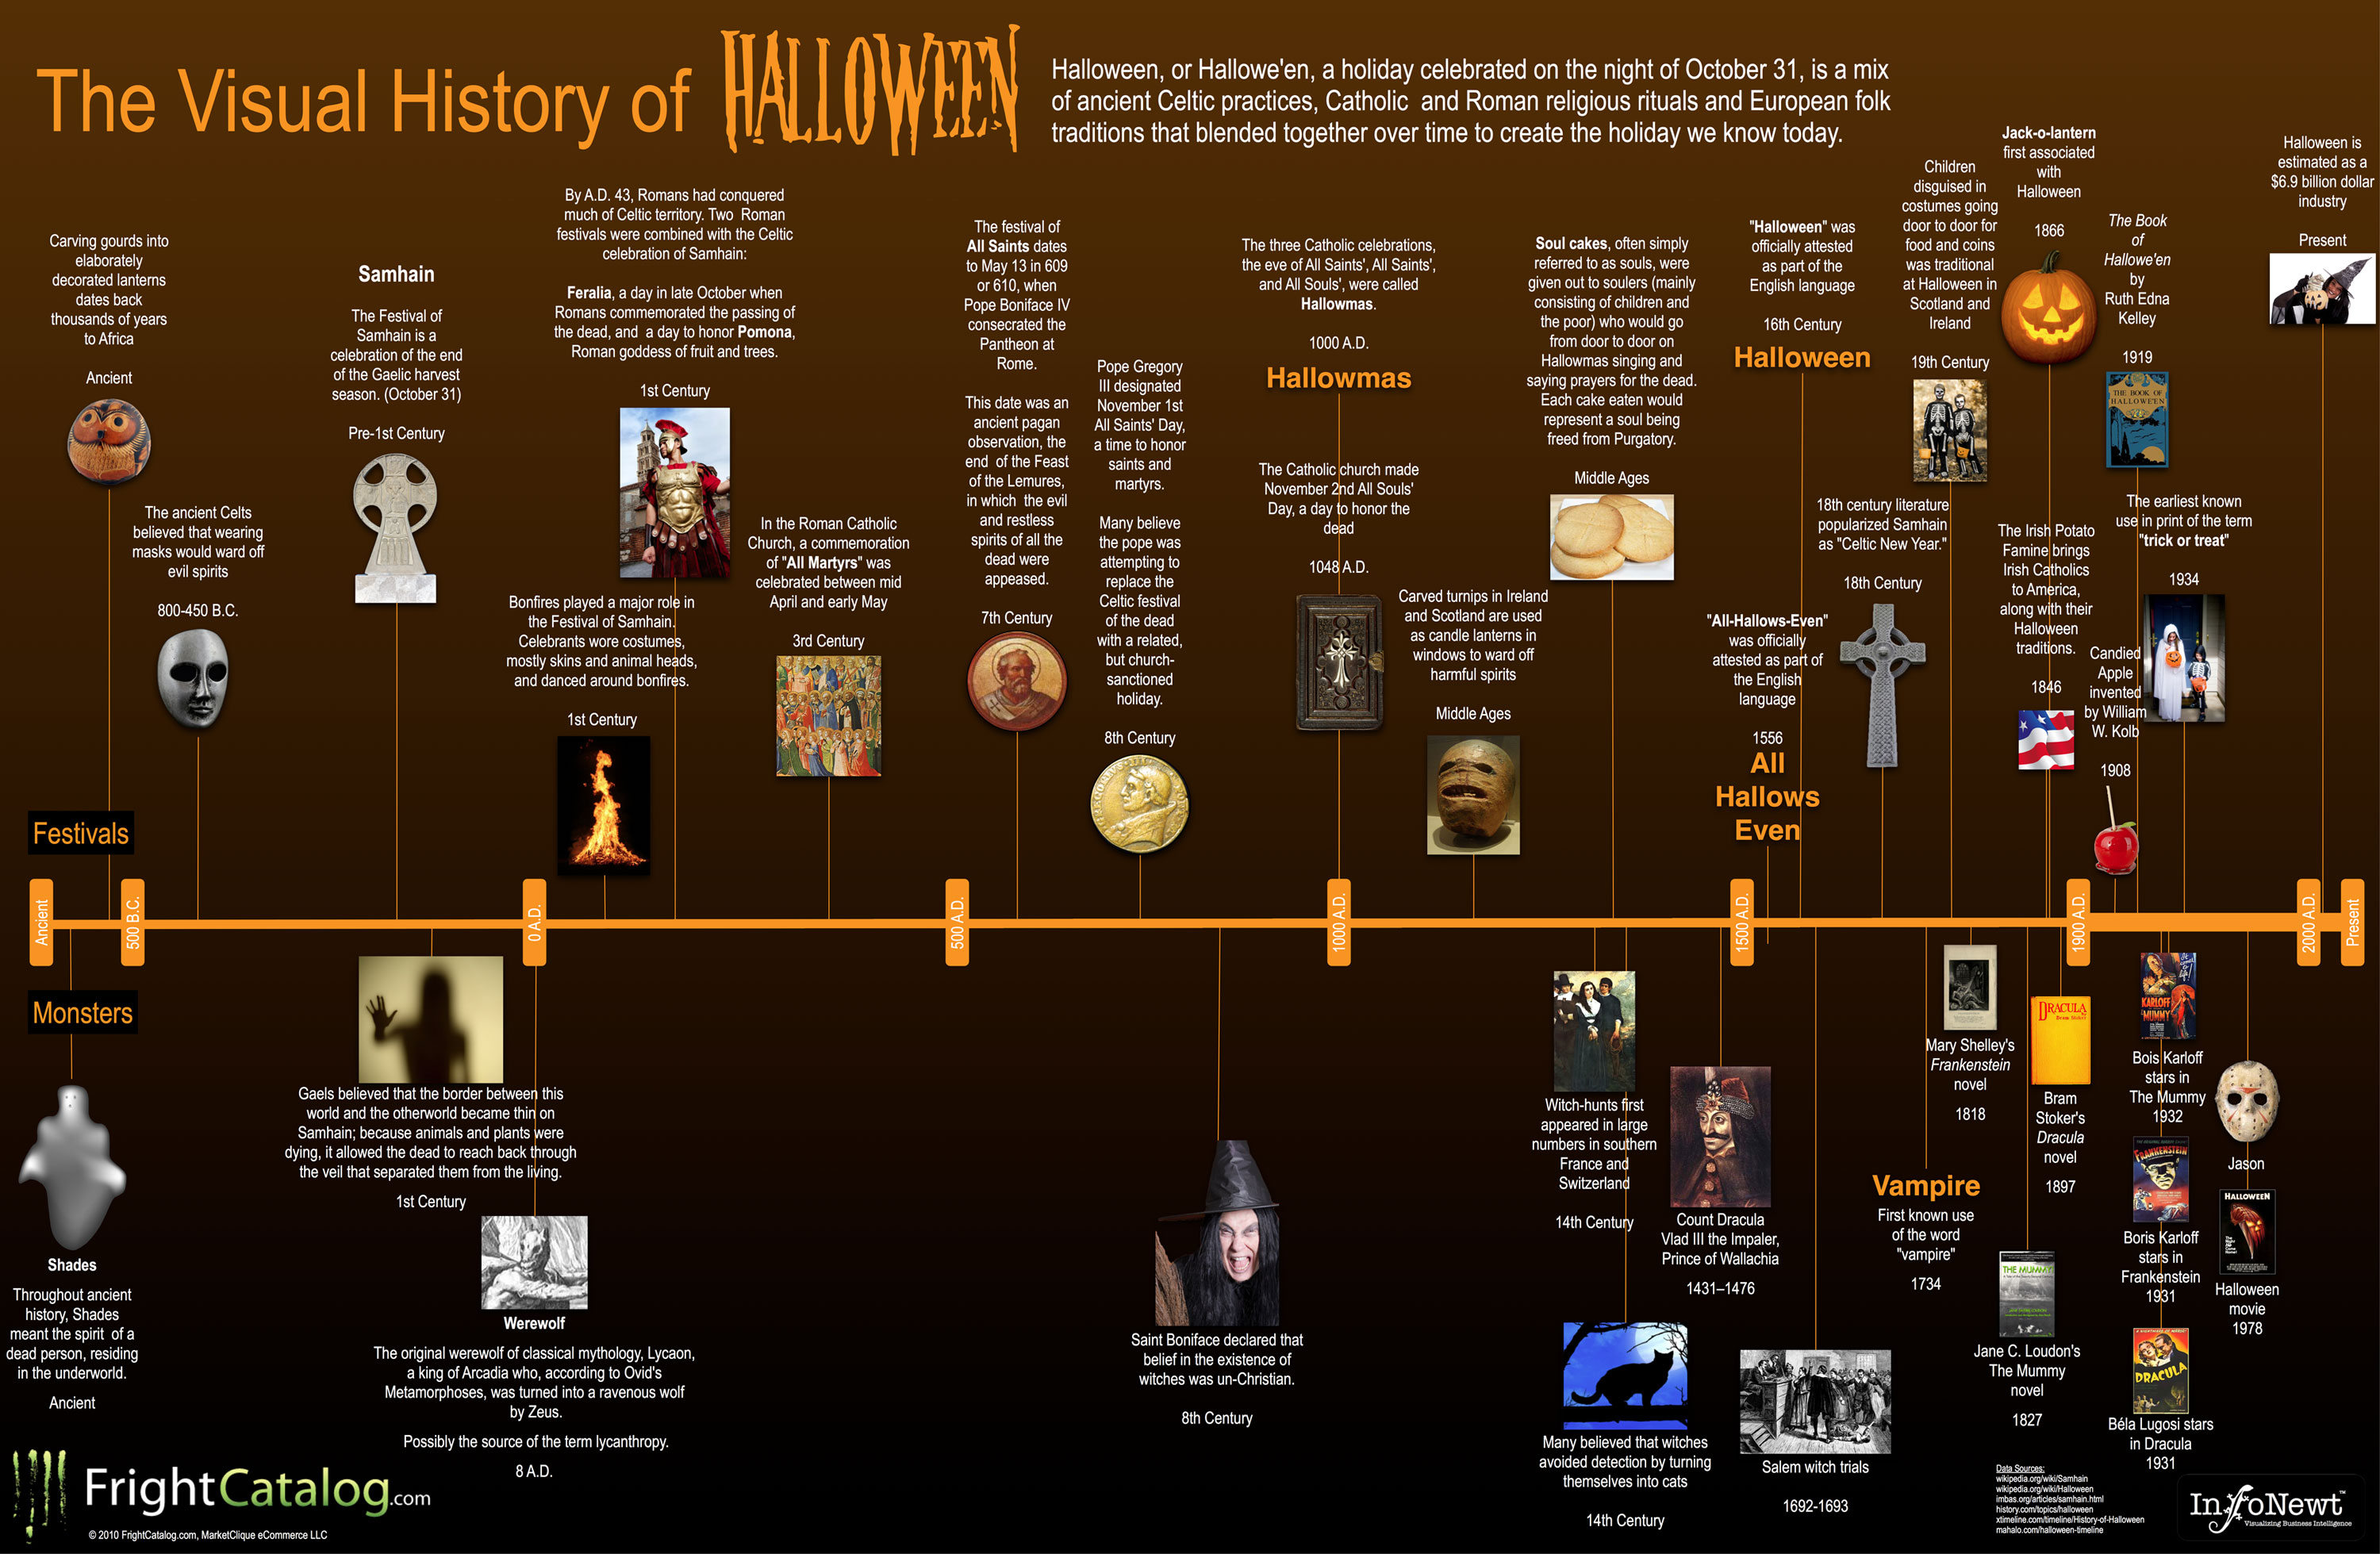 Timeline of the Origin of Halloween | Know-It-All